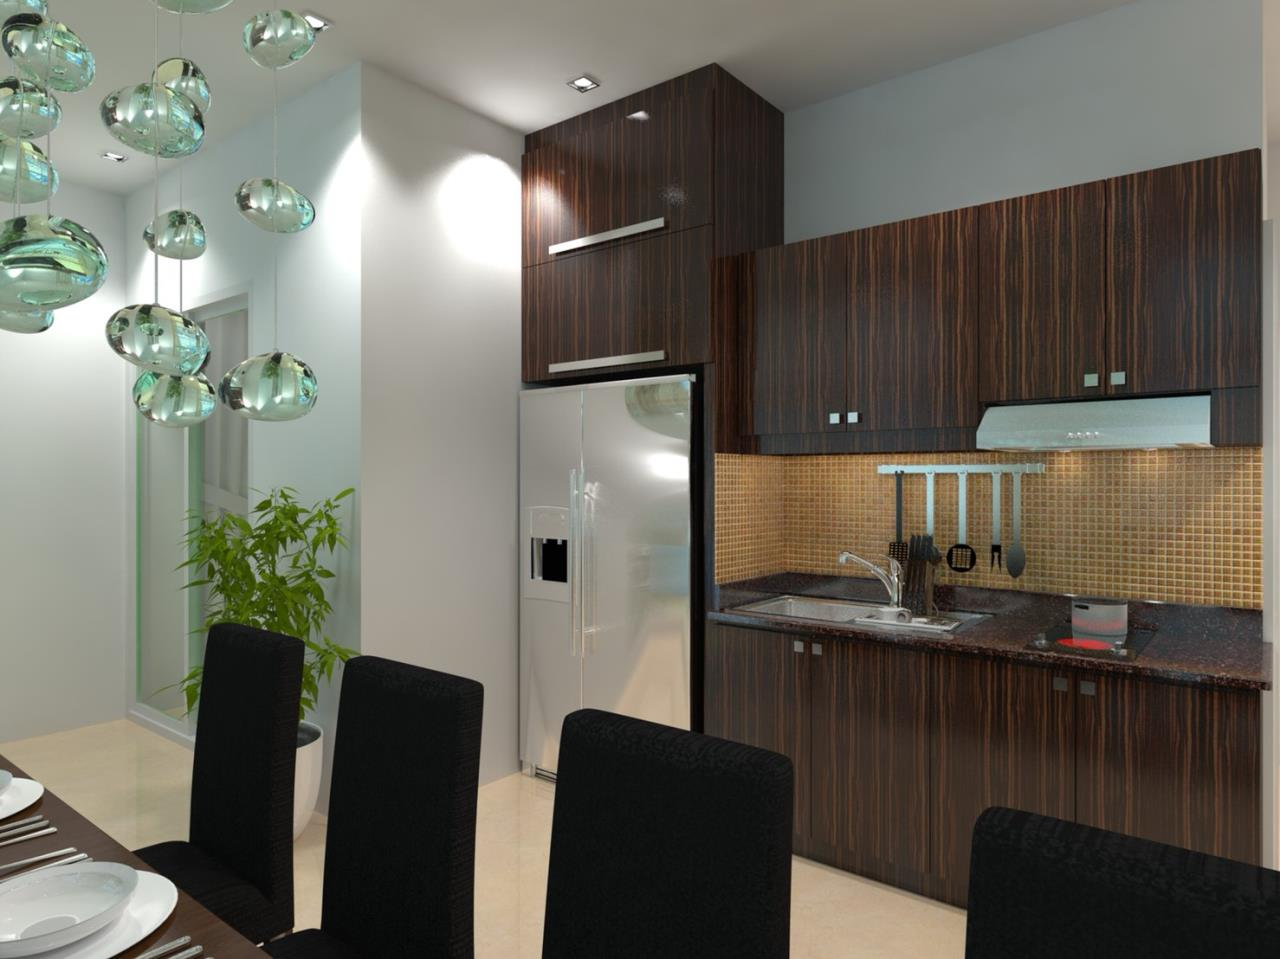 Signature Realty ( Thailand ) Co Ltd Agency's Furnished 1bedroom 46 sq.m condo with jacuzzi floor 21-31 at The Grand Jomtein Beach Pattaya 33